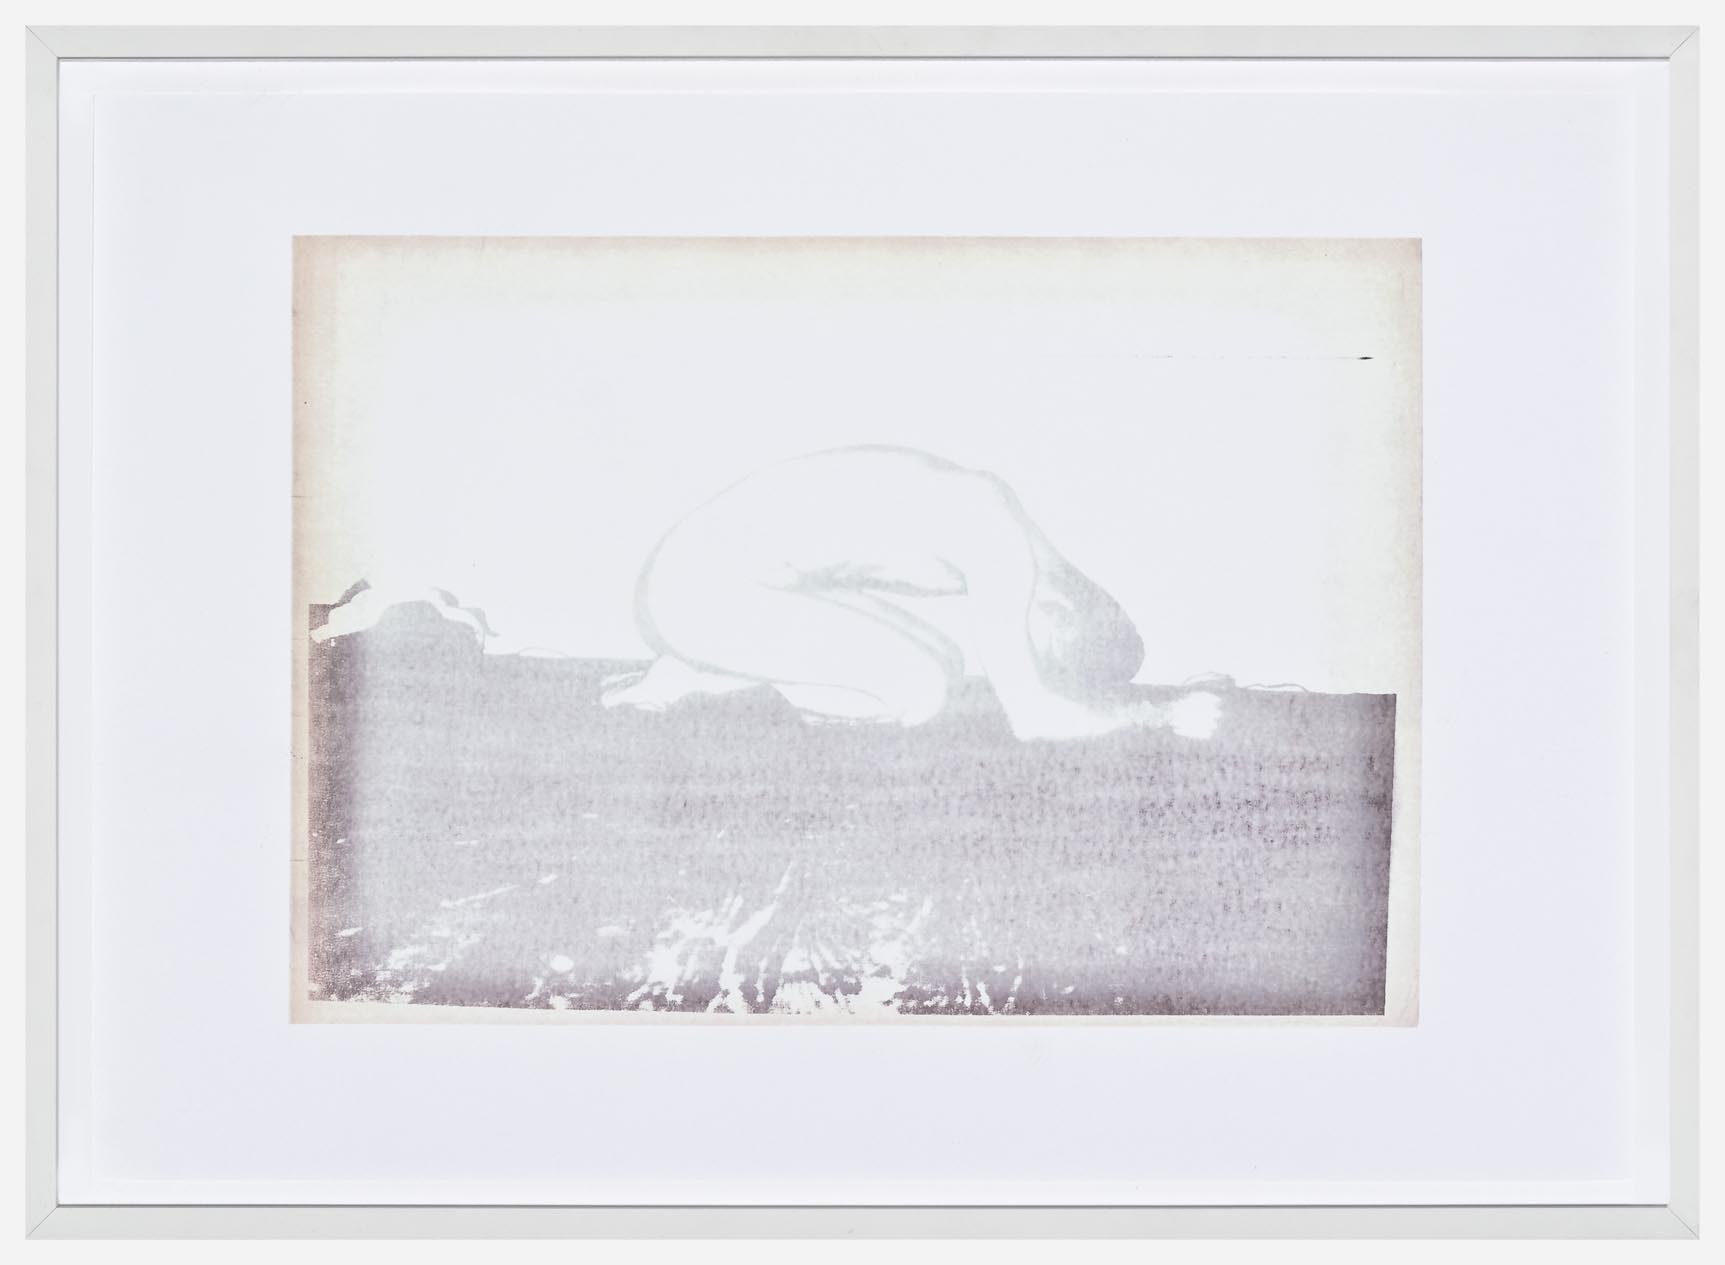 Wolfgang Tillmans Like Praying (Faded Fax) 2005 colour photocopies 33 x 45.5 cm